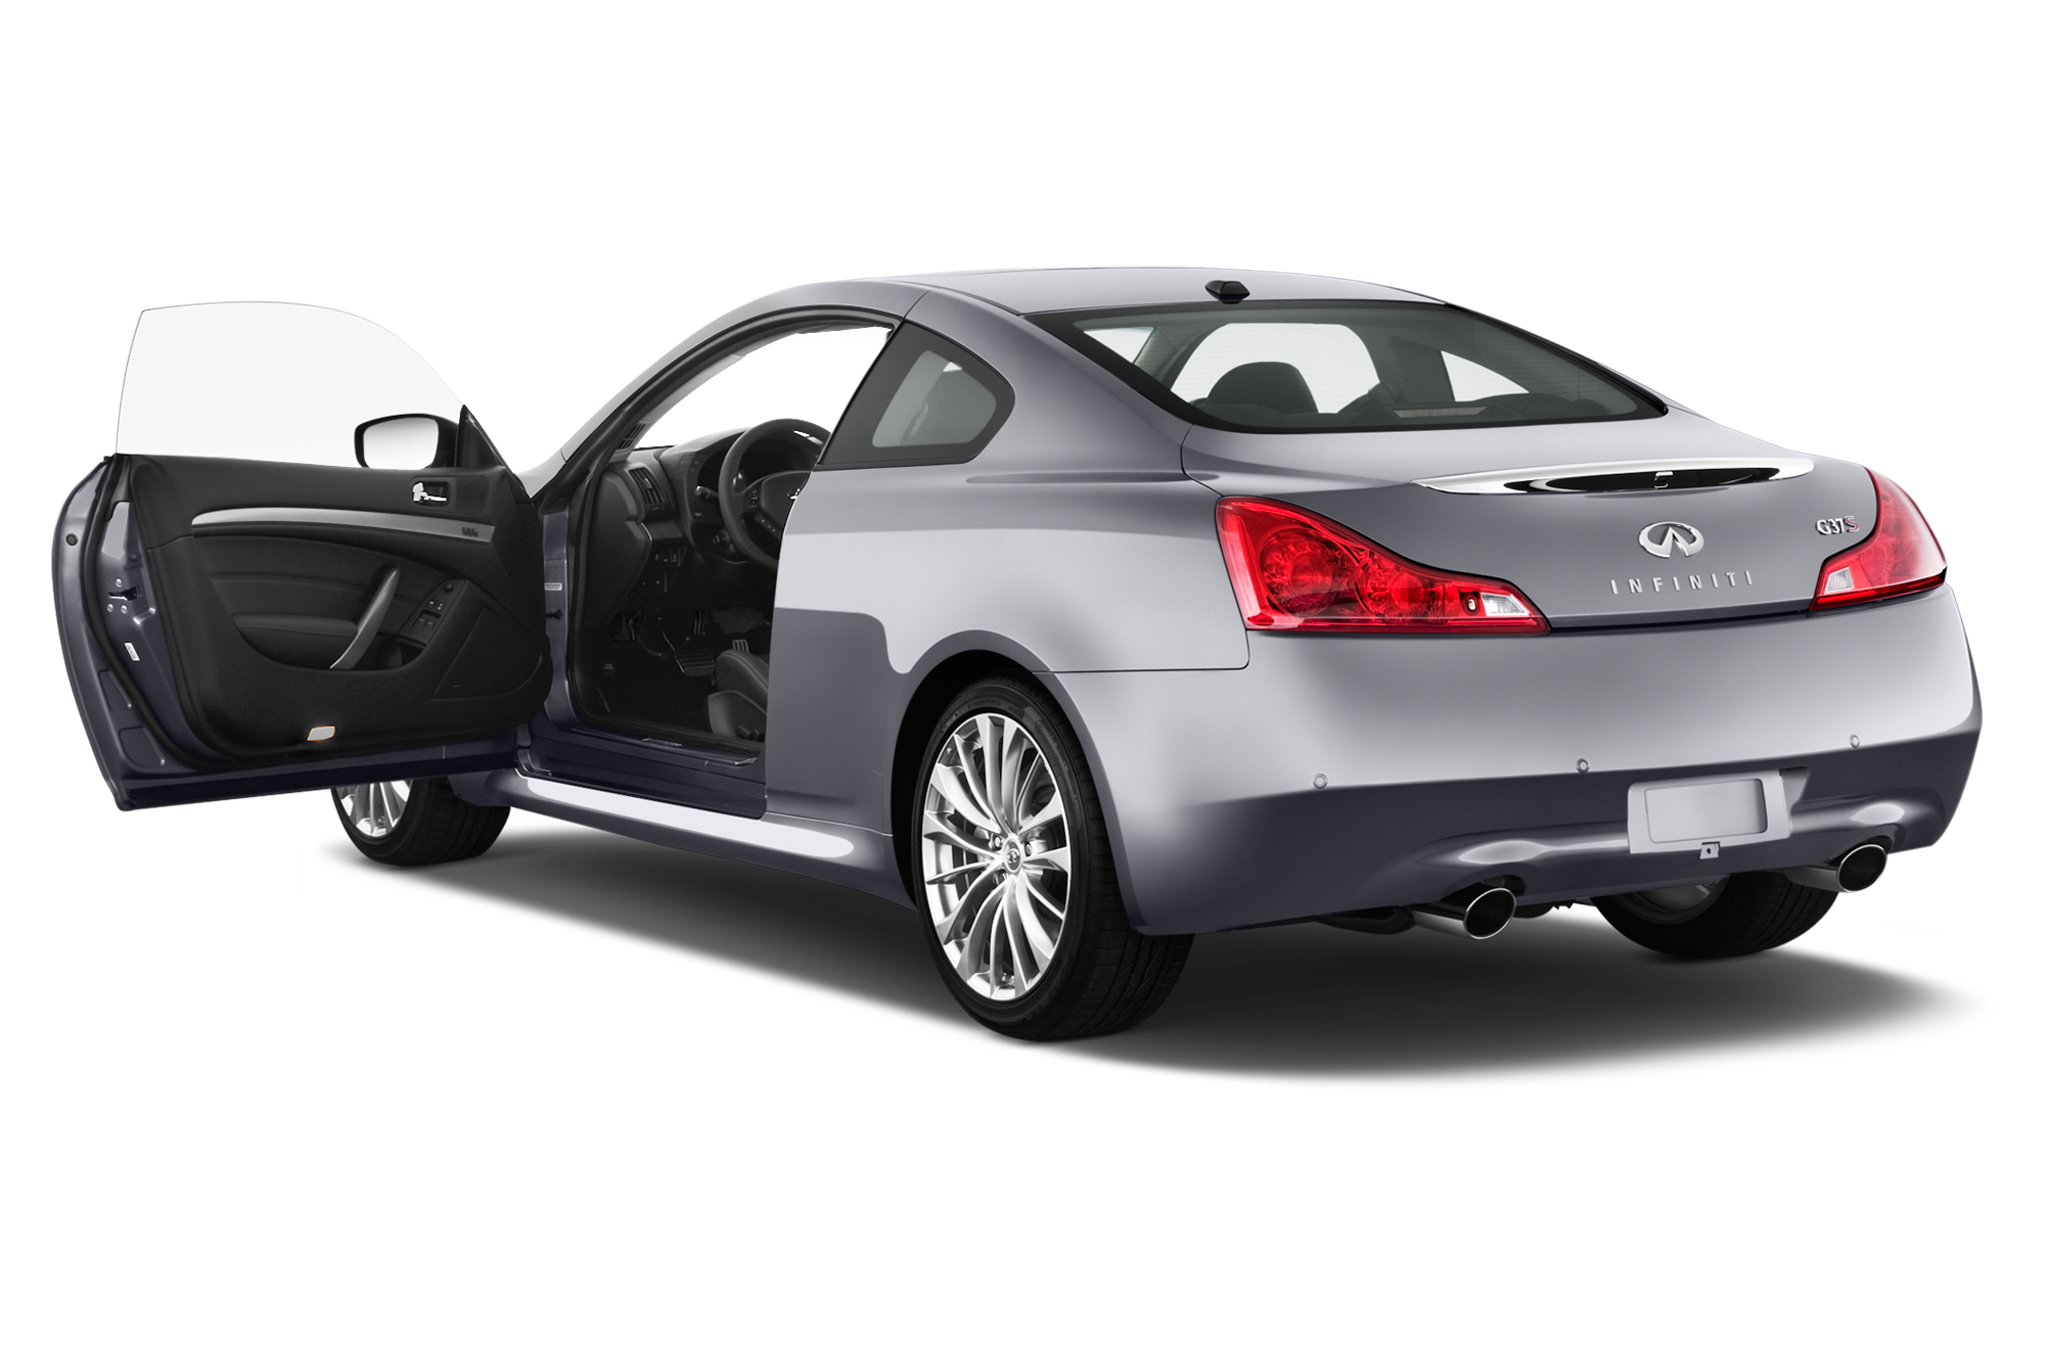 2010 infiniti g37 convertible infiniti luxury. Black Bedroom Furniture Sets. Home Design Ideas